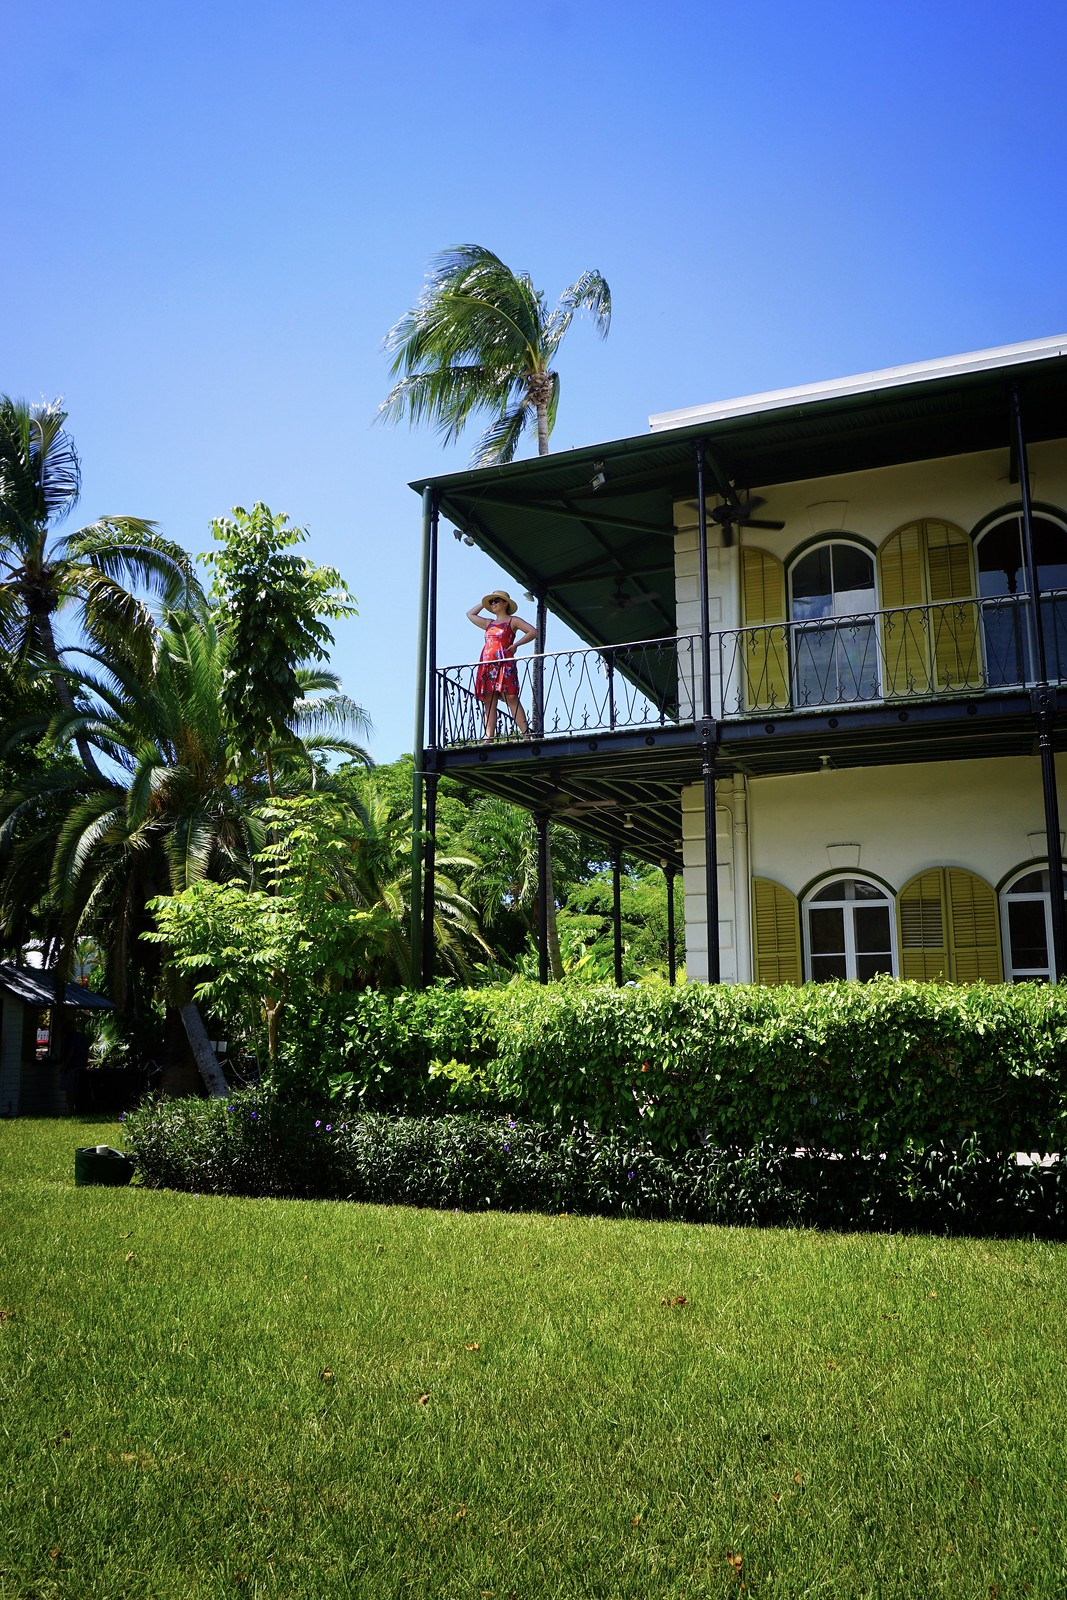 ernest-humingway-home-ultimate-road-trip-5-days-florida-keys-itinerary-what-to-do-key-west-key-largo-islamorada-marathon-miami-vacation-guide